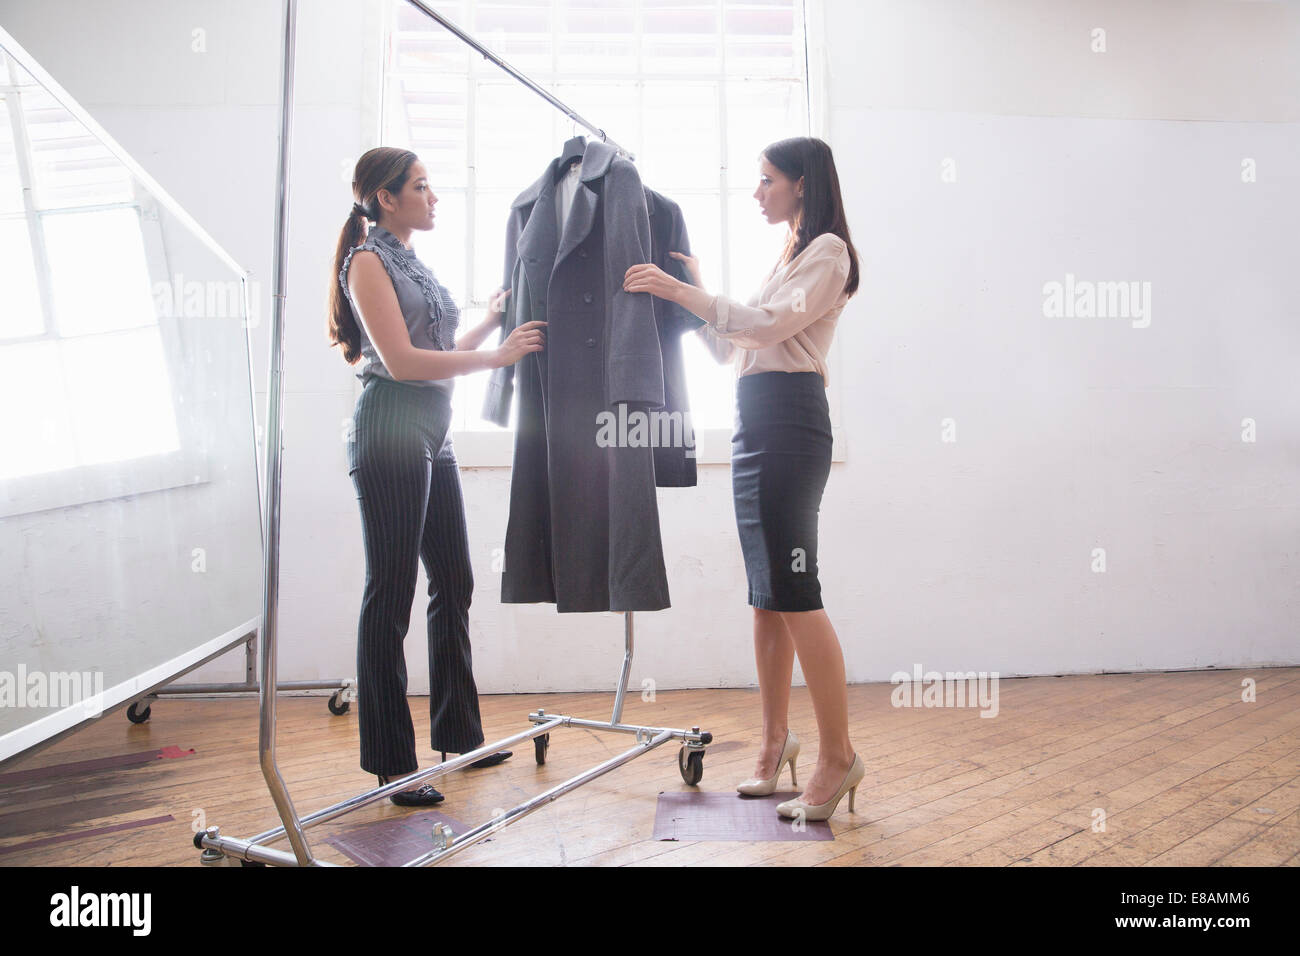 Businesswomen choosing smart clothes from clothes rail - Stock Image